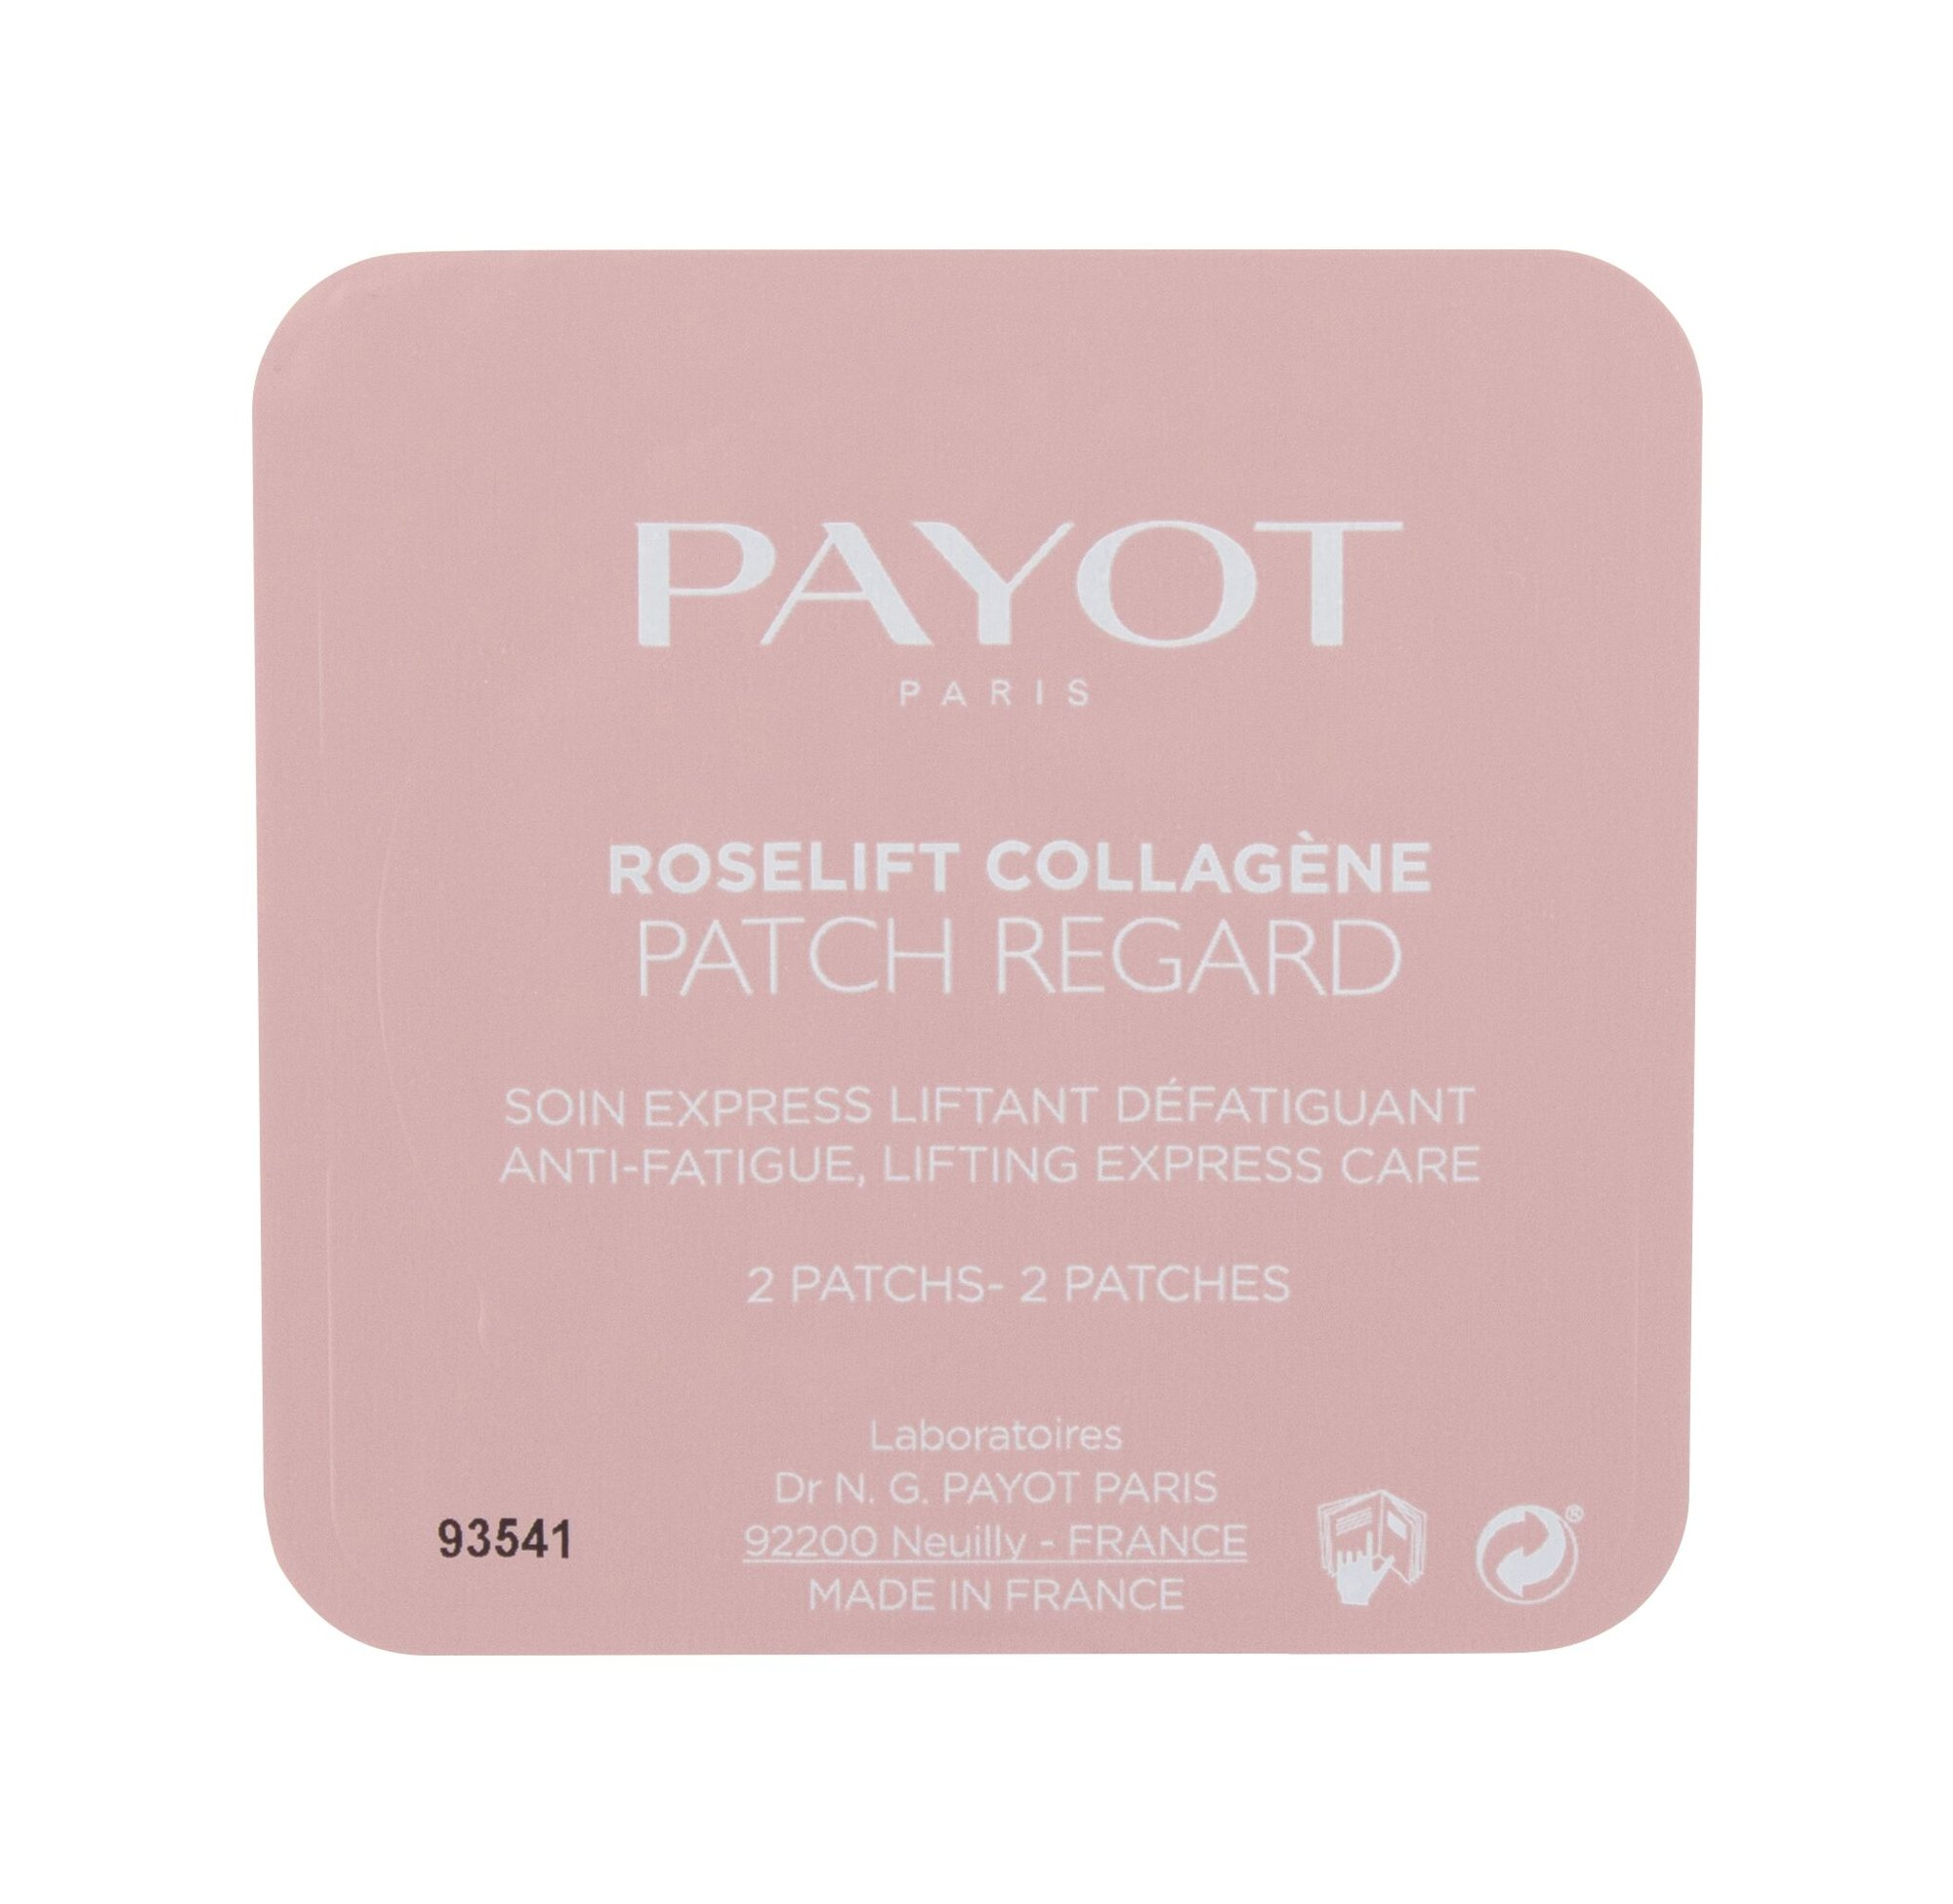 PAYOT Roselift Collagéne Patch Regard, Očný gél 20ks